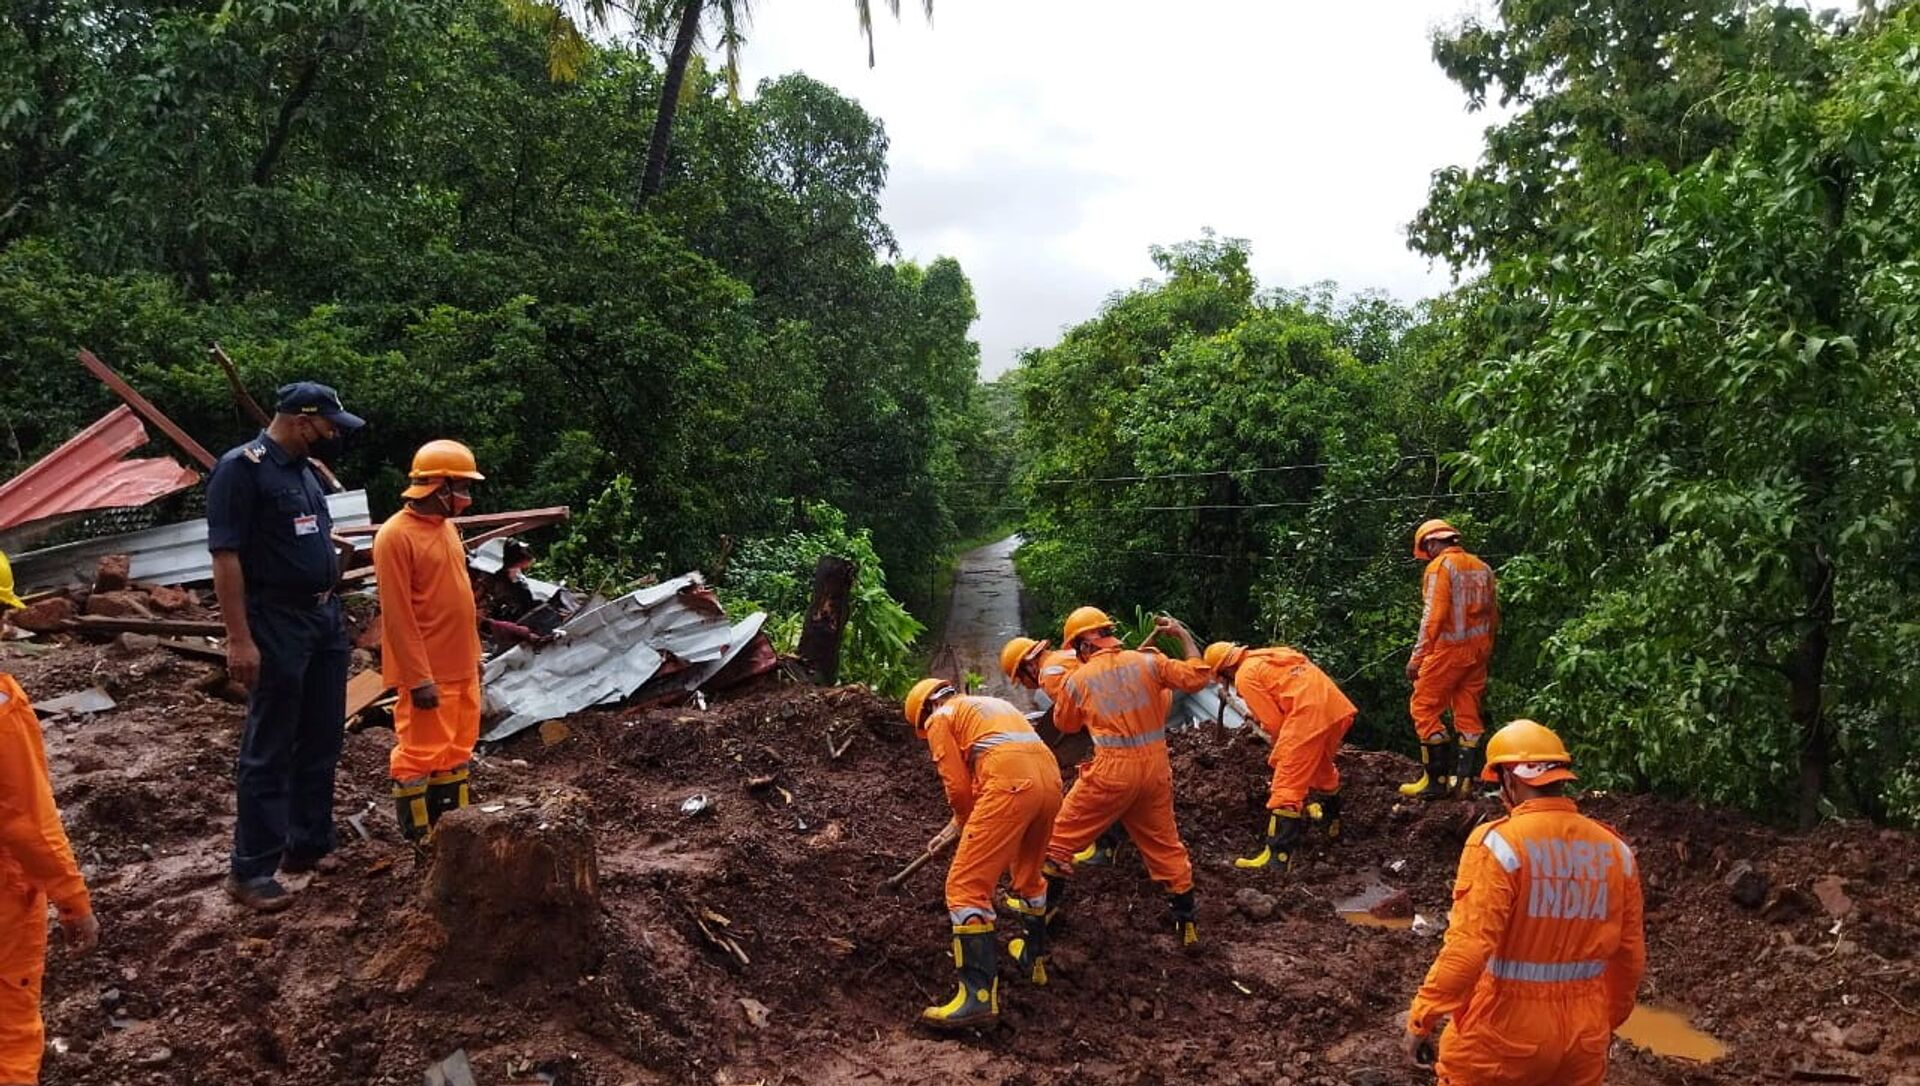 Members of National Disaster Response Force (NDRF) conduct a search and rescue operation after a landslide following heavy rains in Ratnagiri district, Maharashtra state, India, July 25, 2021.  - Sputnik International, 1920, 26.07.2021